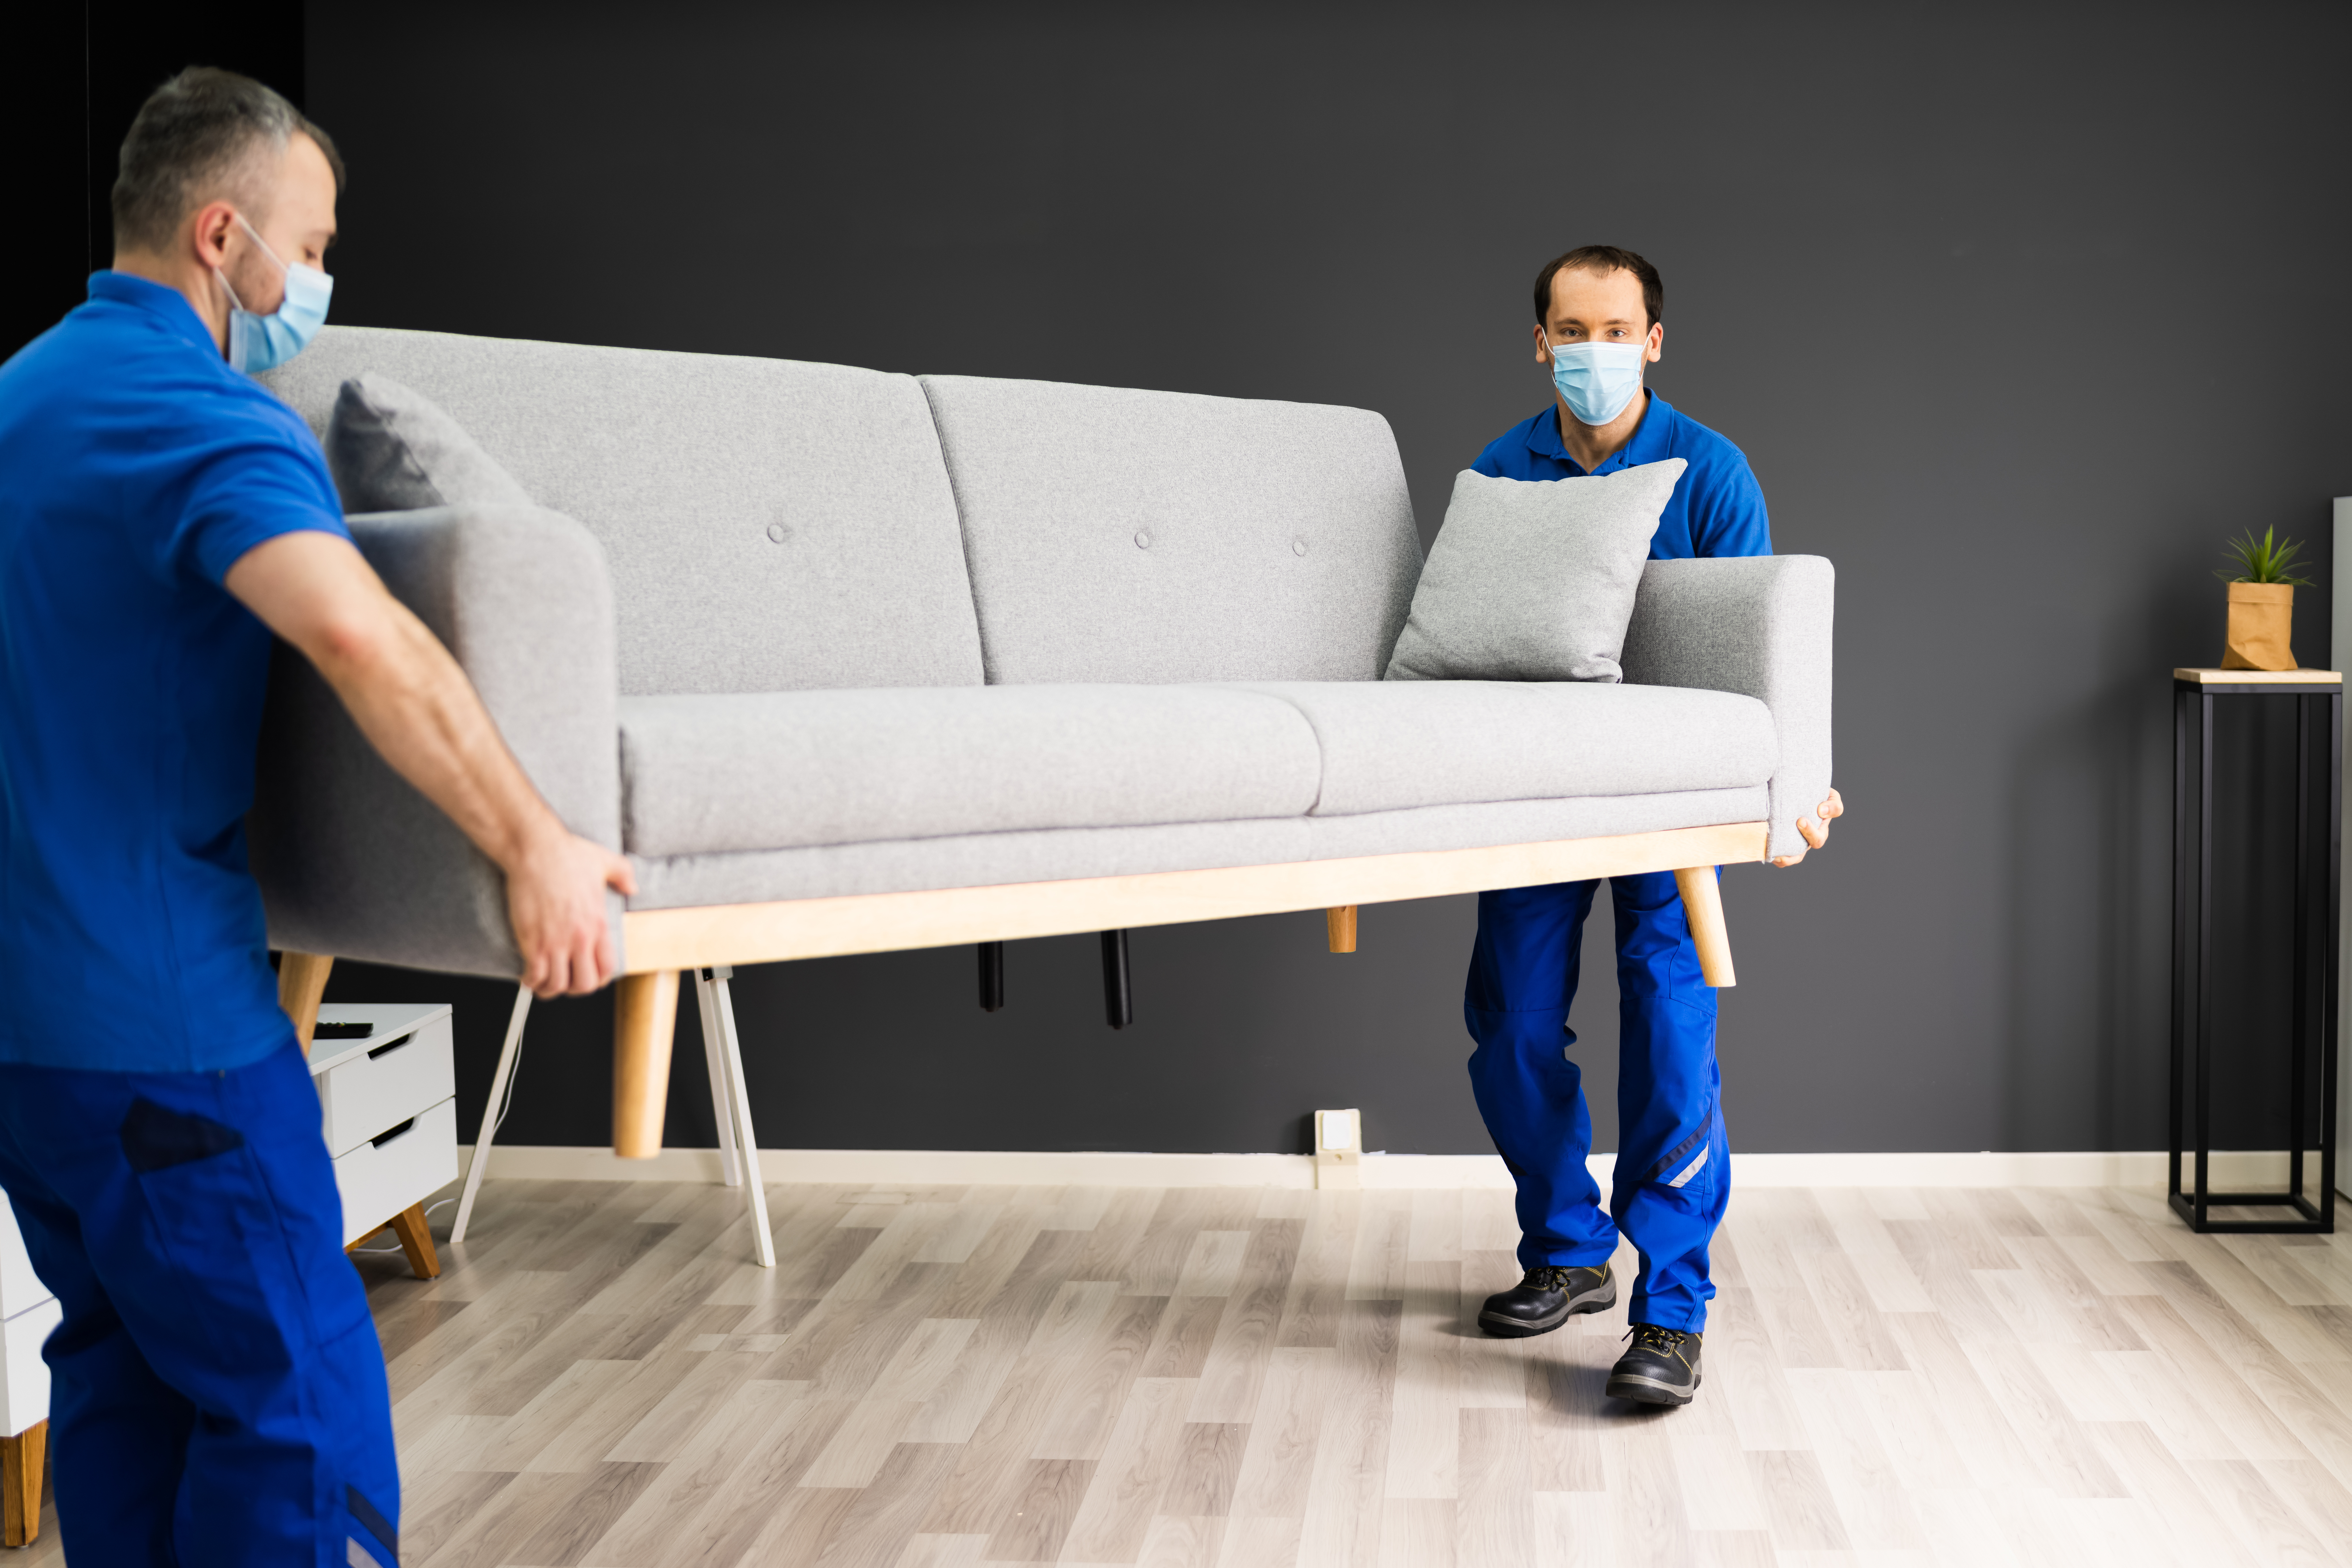 Professional Movers Moving Couch Furniture